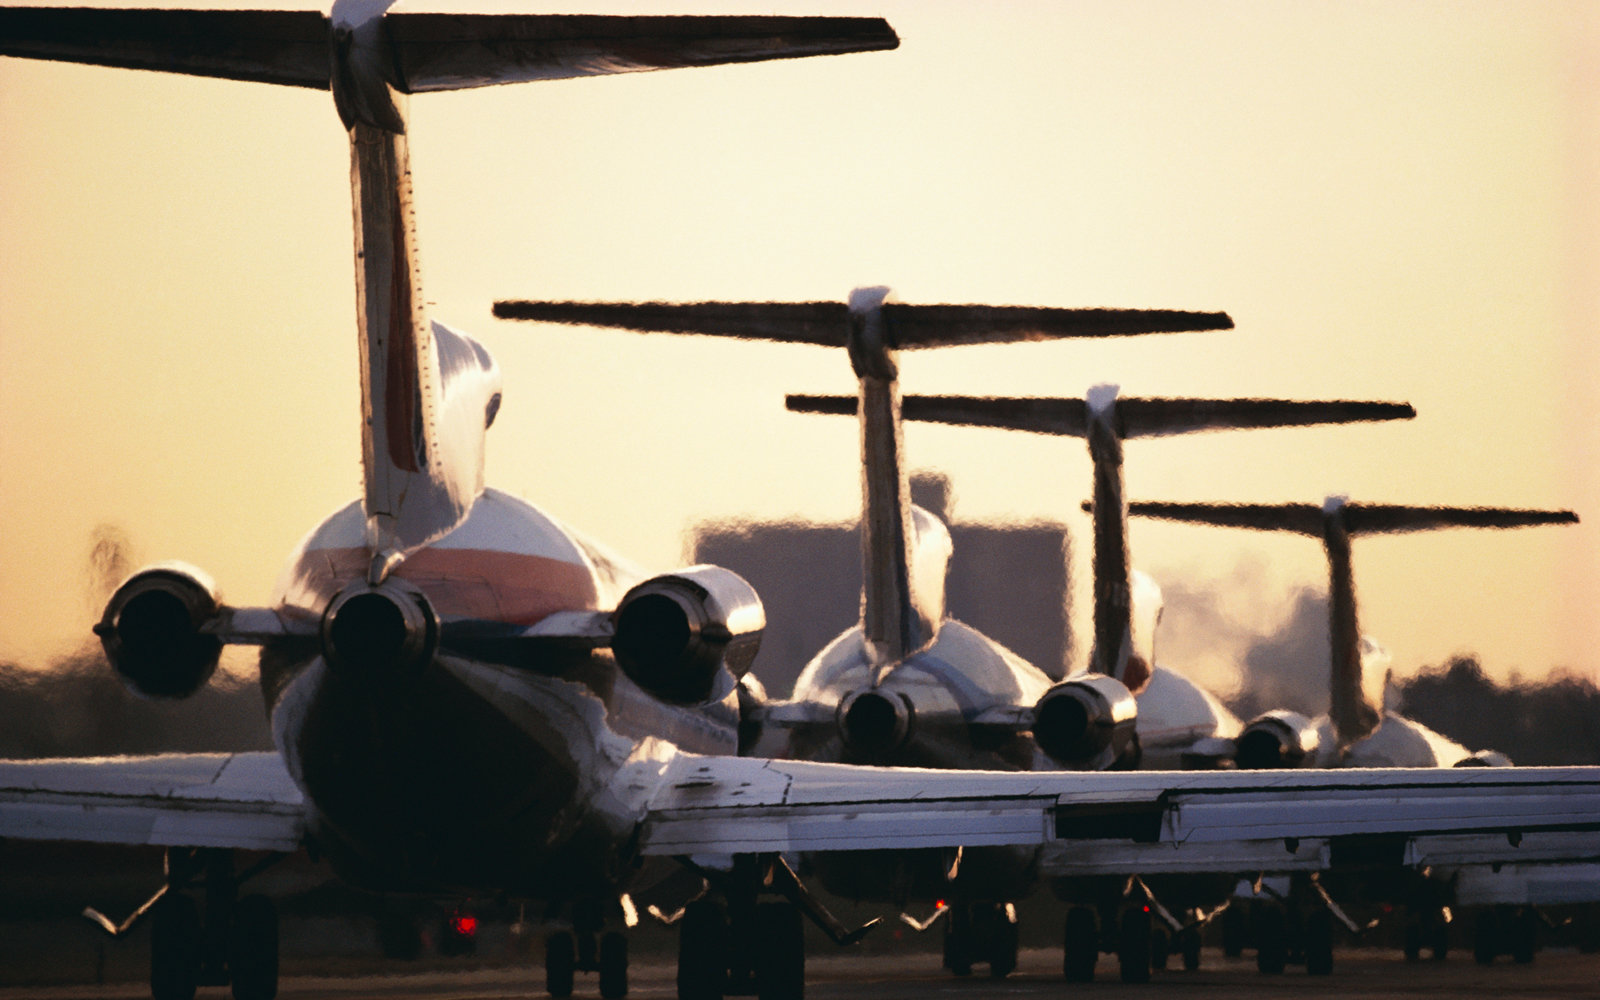 Jets on a runway